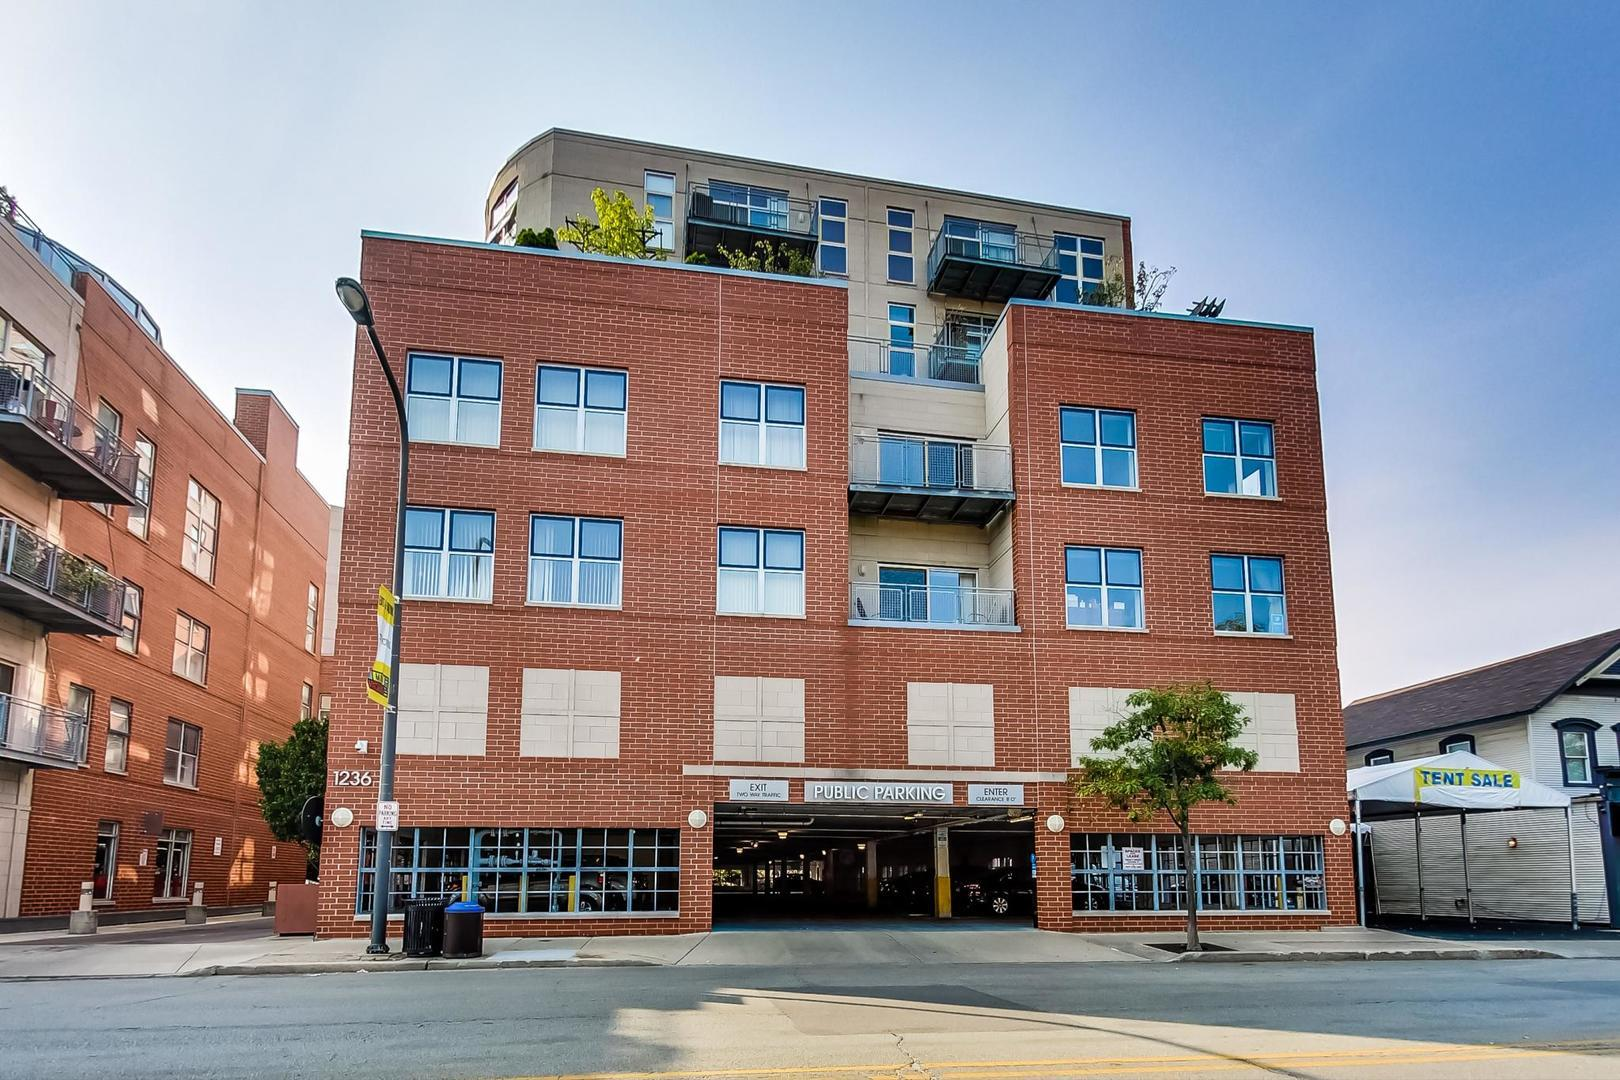 1236 Chicago Avenue #501, Evanston, IL 60202 - #: 10887161